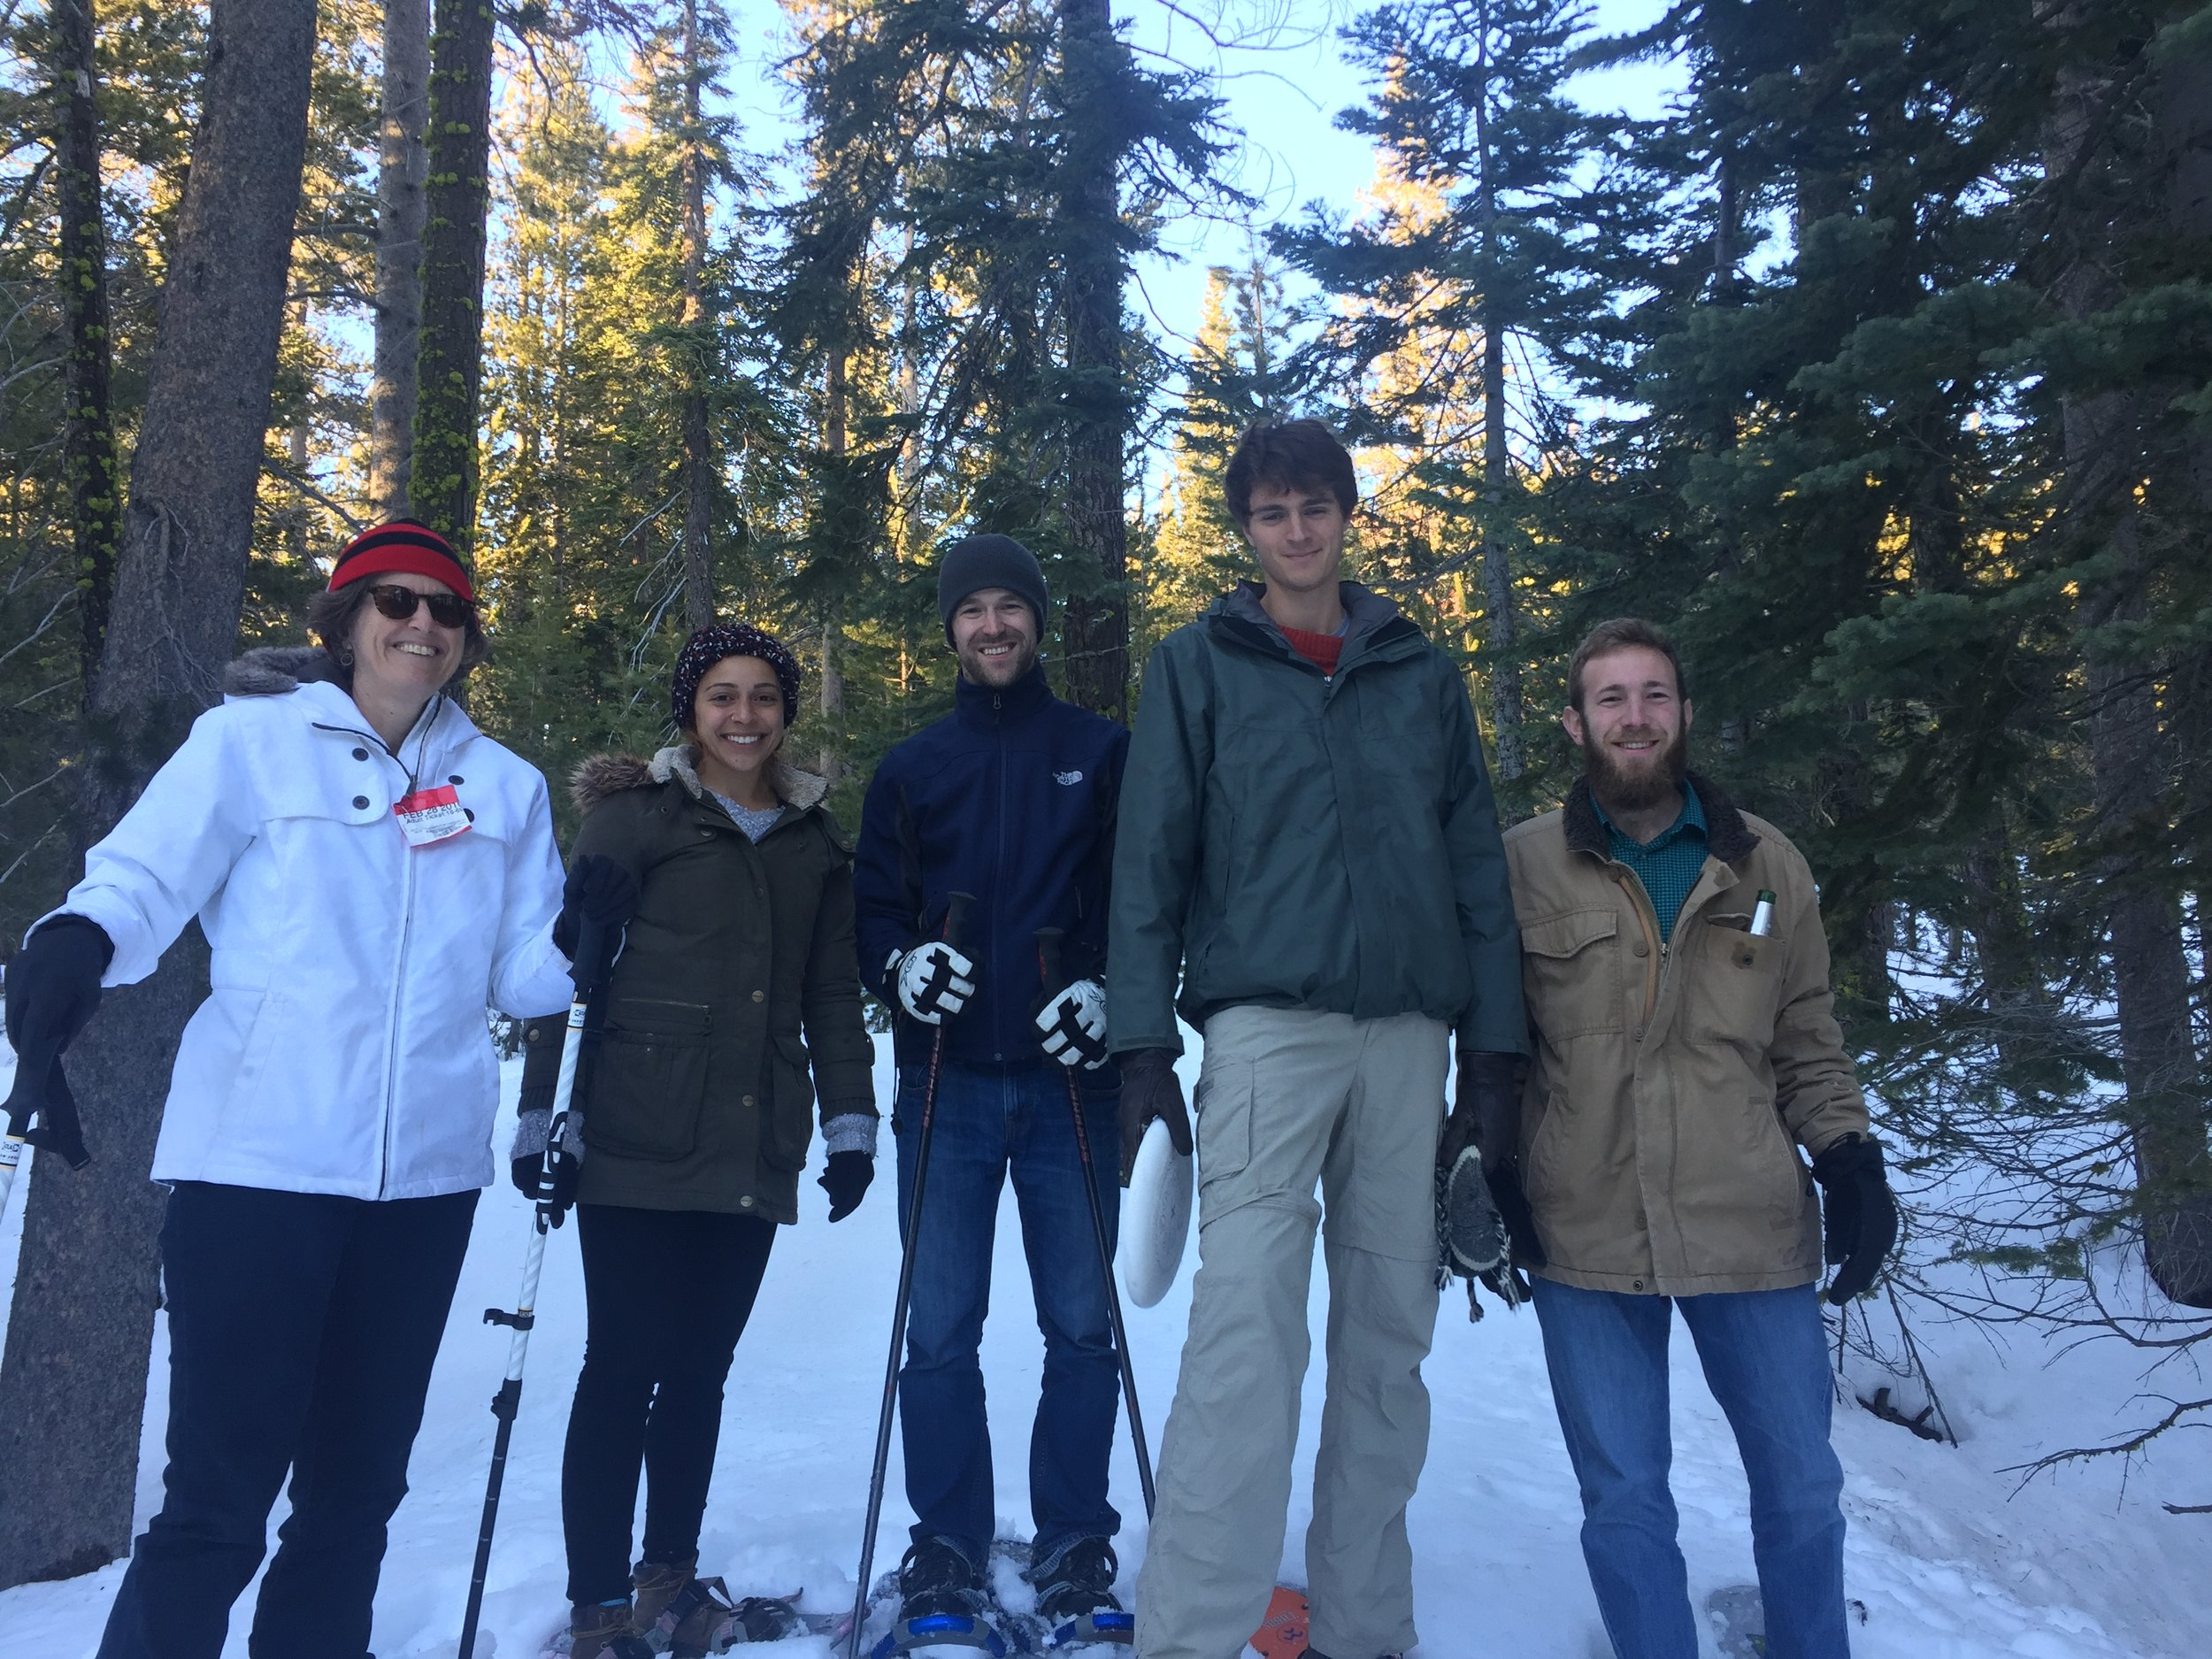 Snow-shoeing with Marla, Malak, Alex, Franklin and Bill